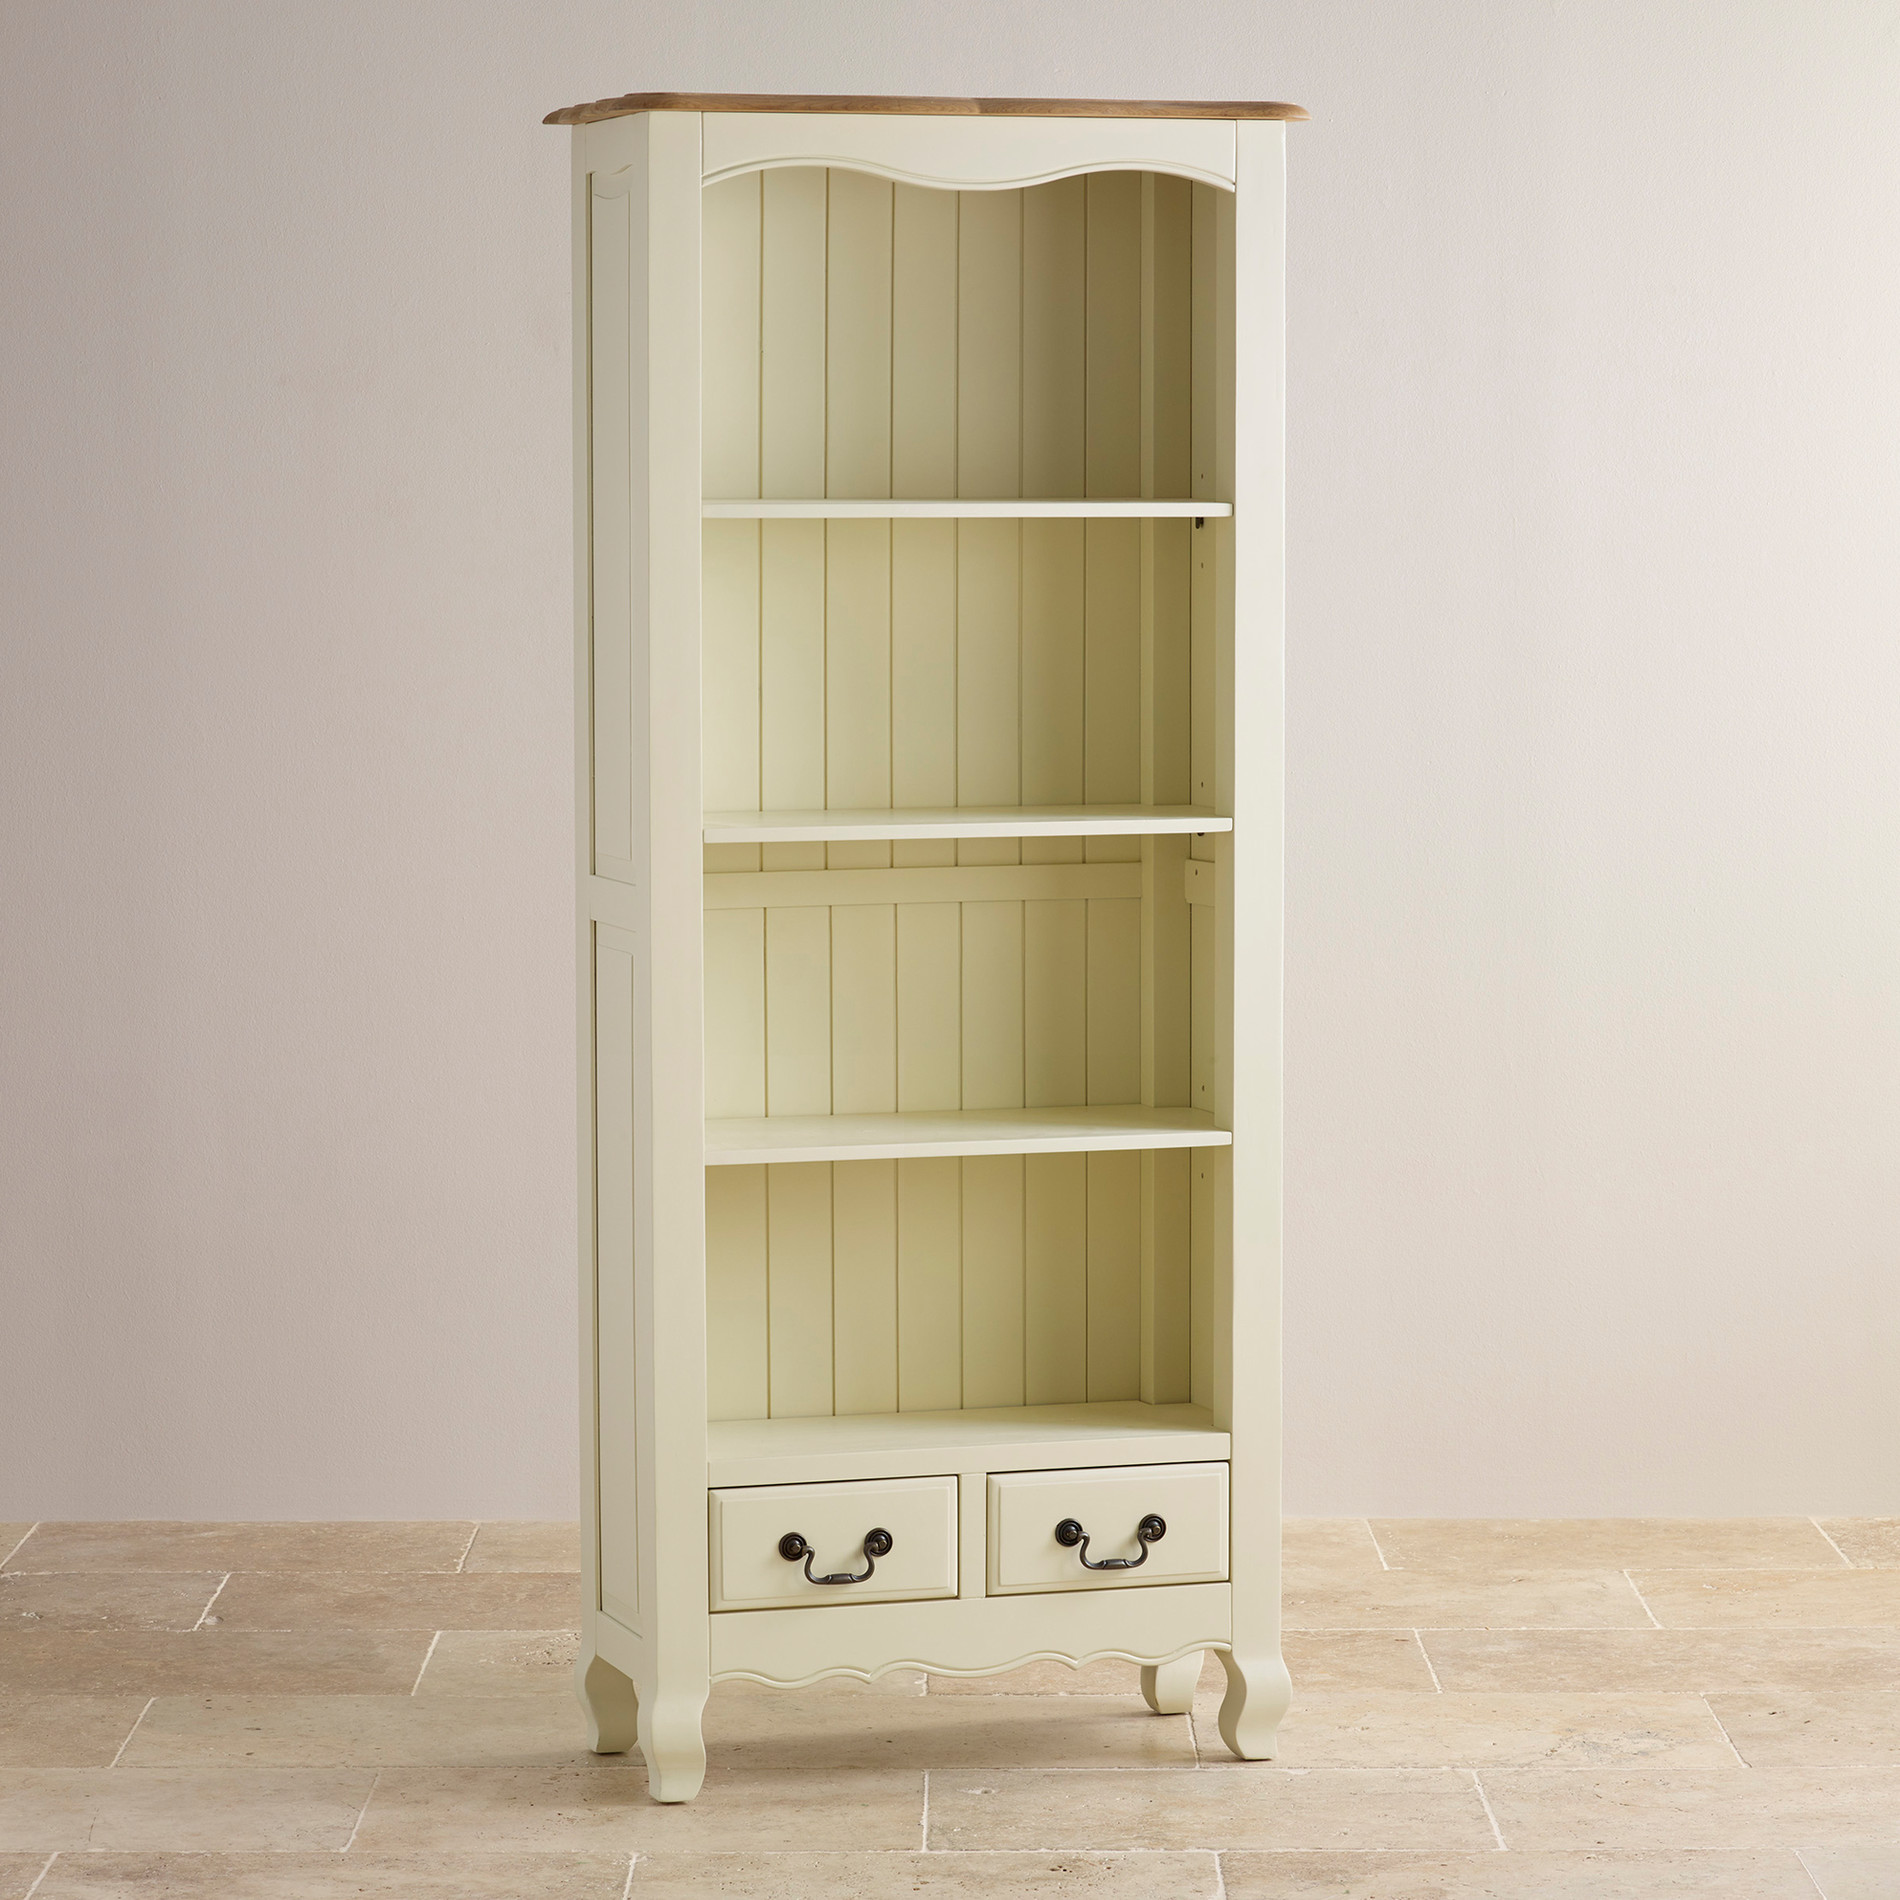 Alton oak corner cabinet oak furniture solutions - Custom Delivery Bella Brushed Oak And Painted Tall Bookcase